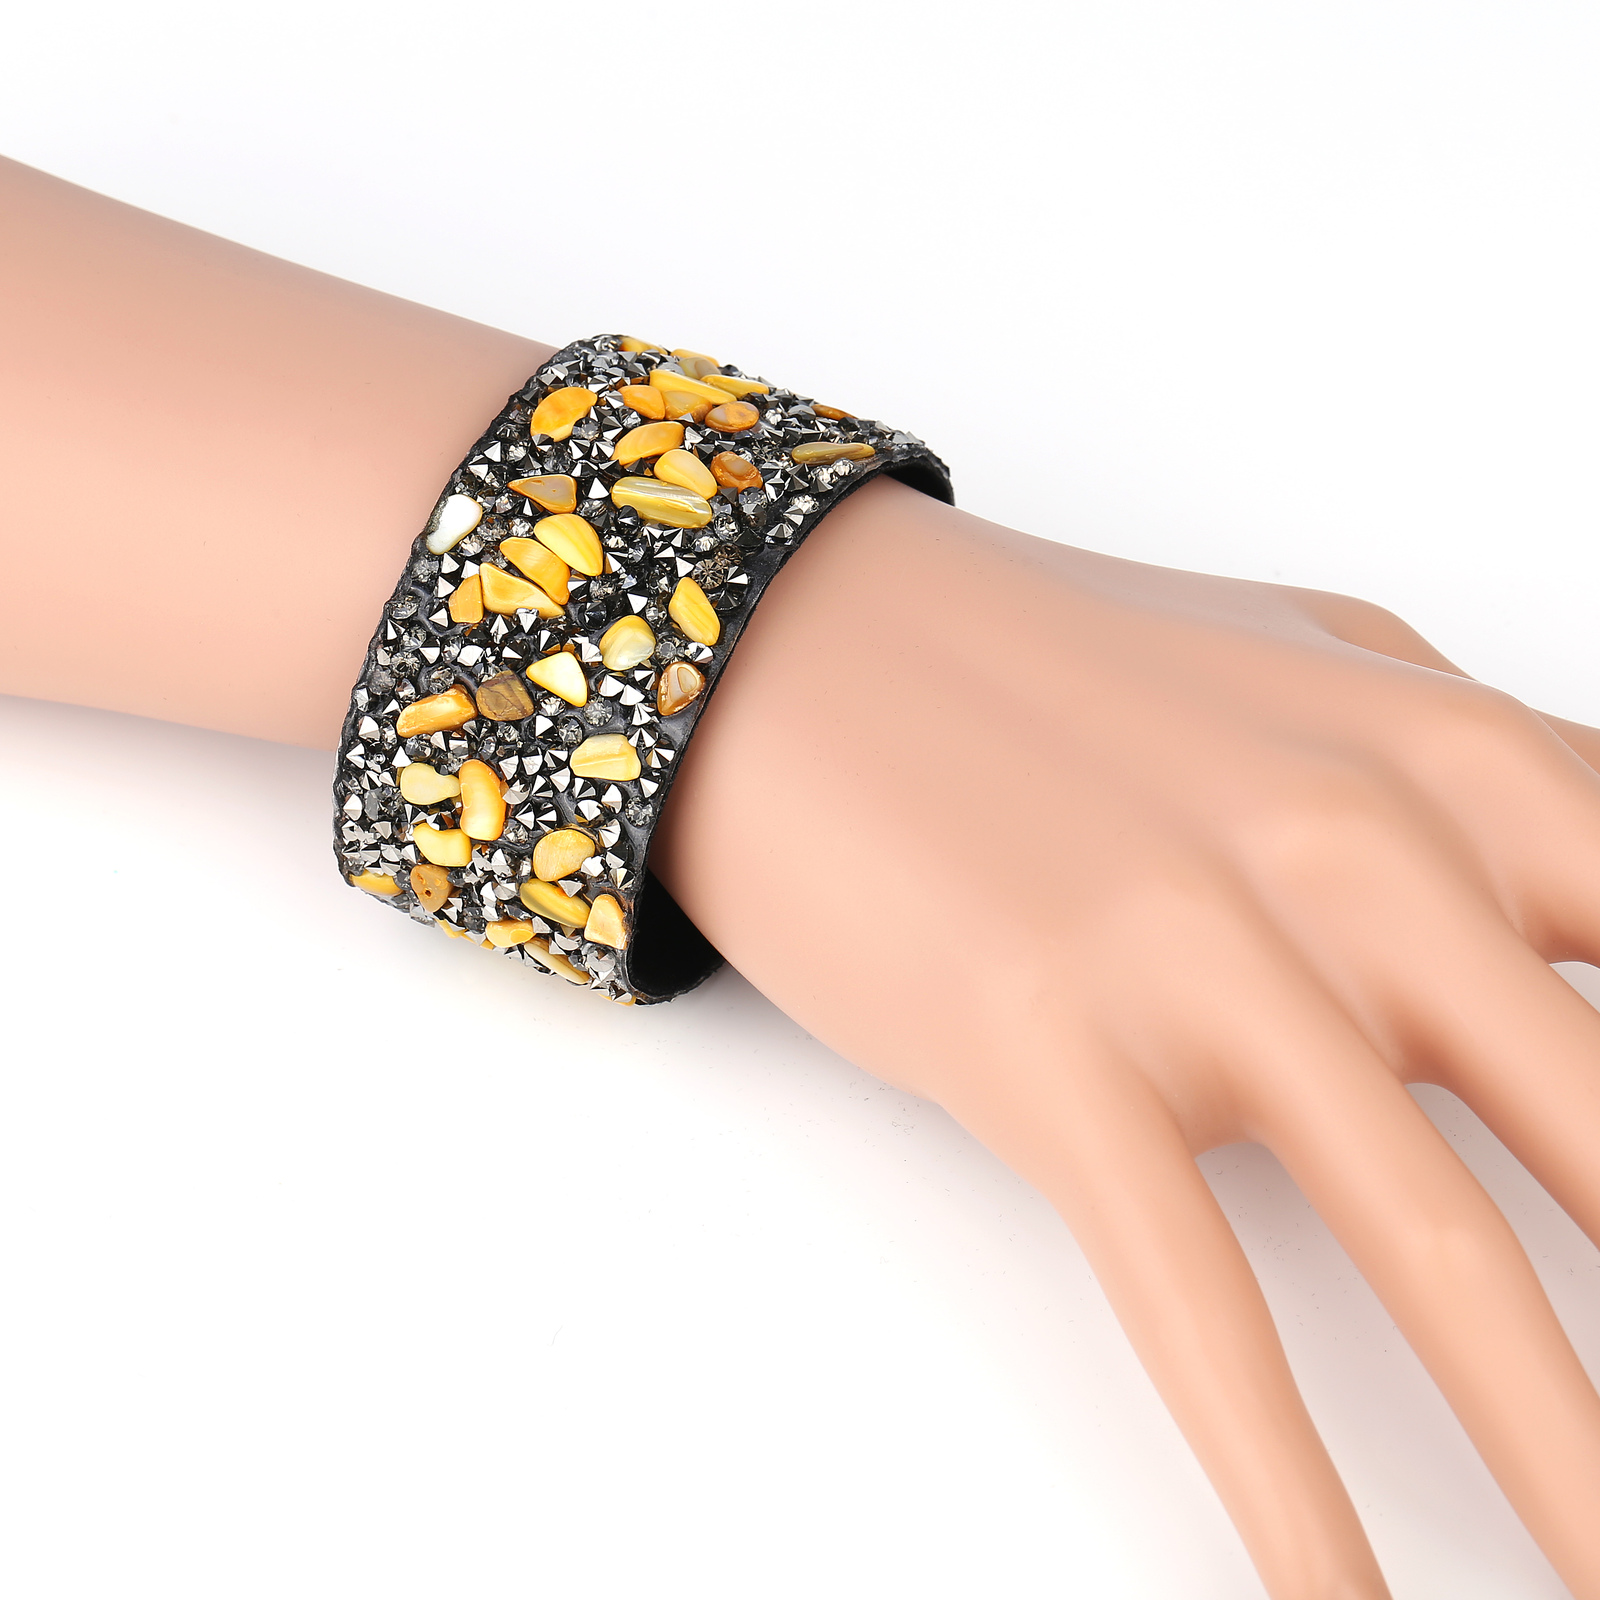 UNITED ELEGANCE Trendy Cuff Wristband With Stones & Swarovski Style Crystals